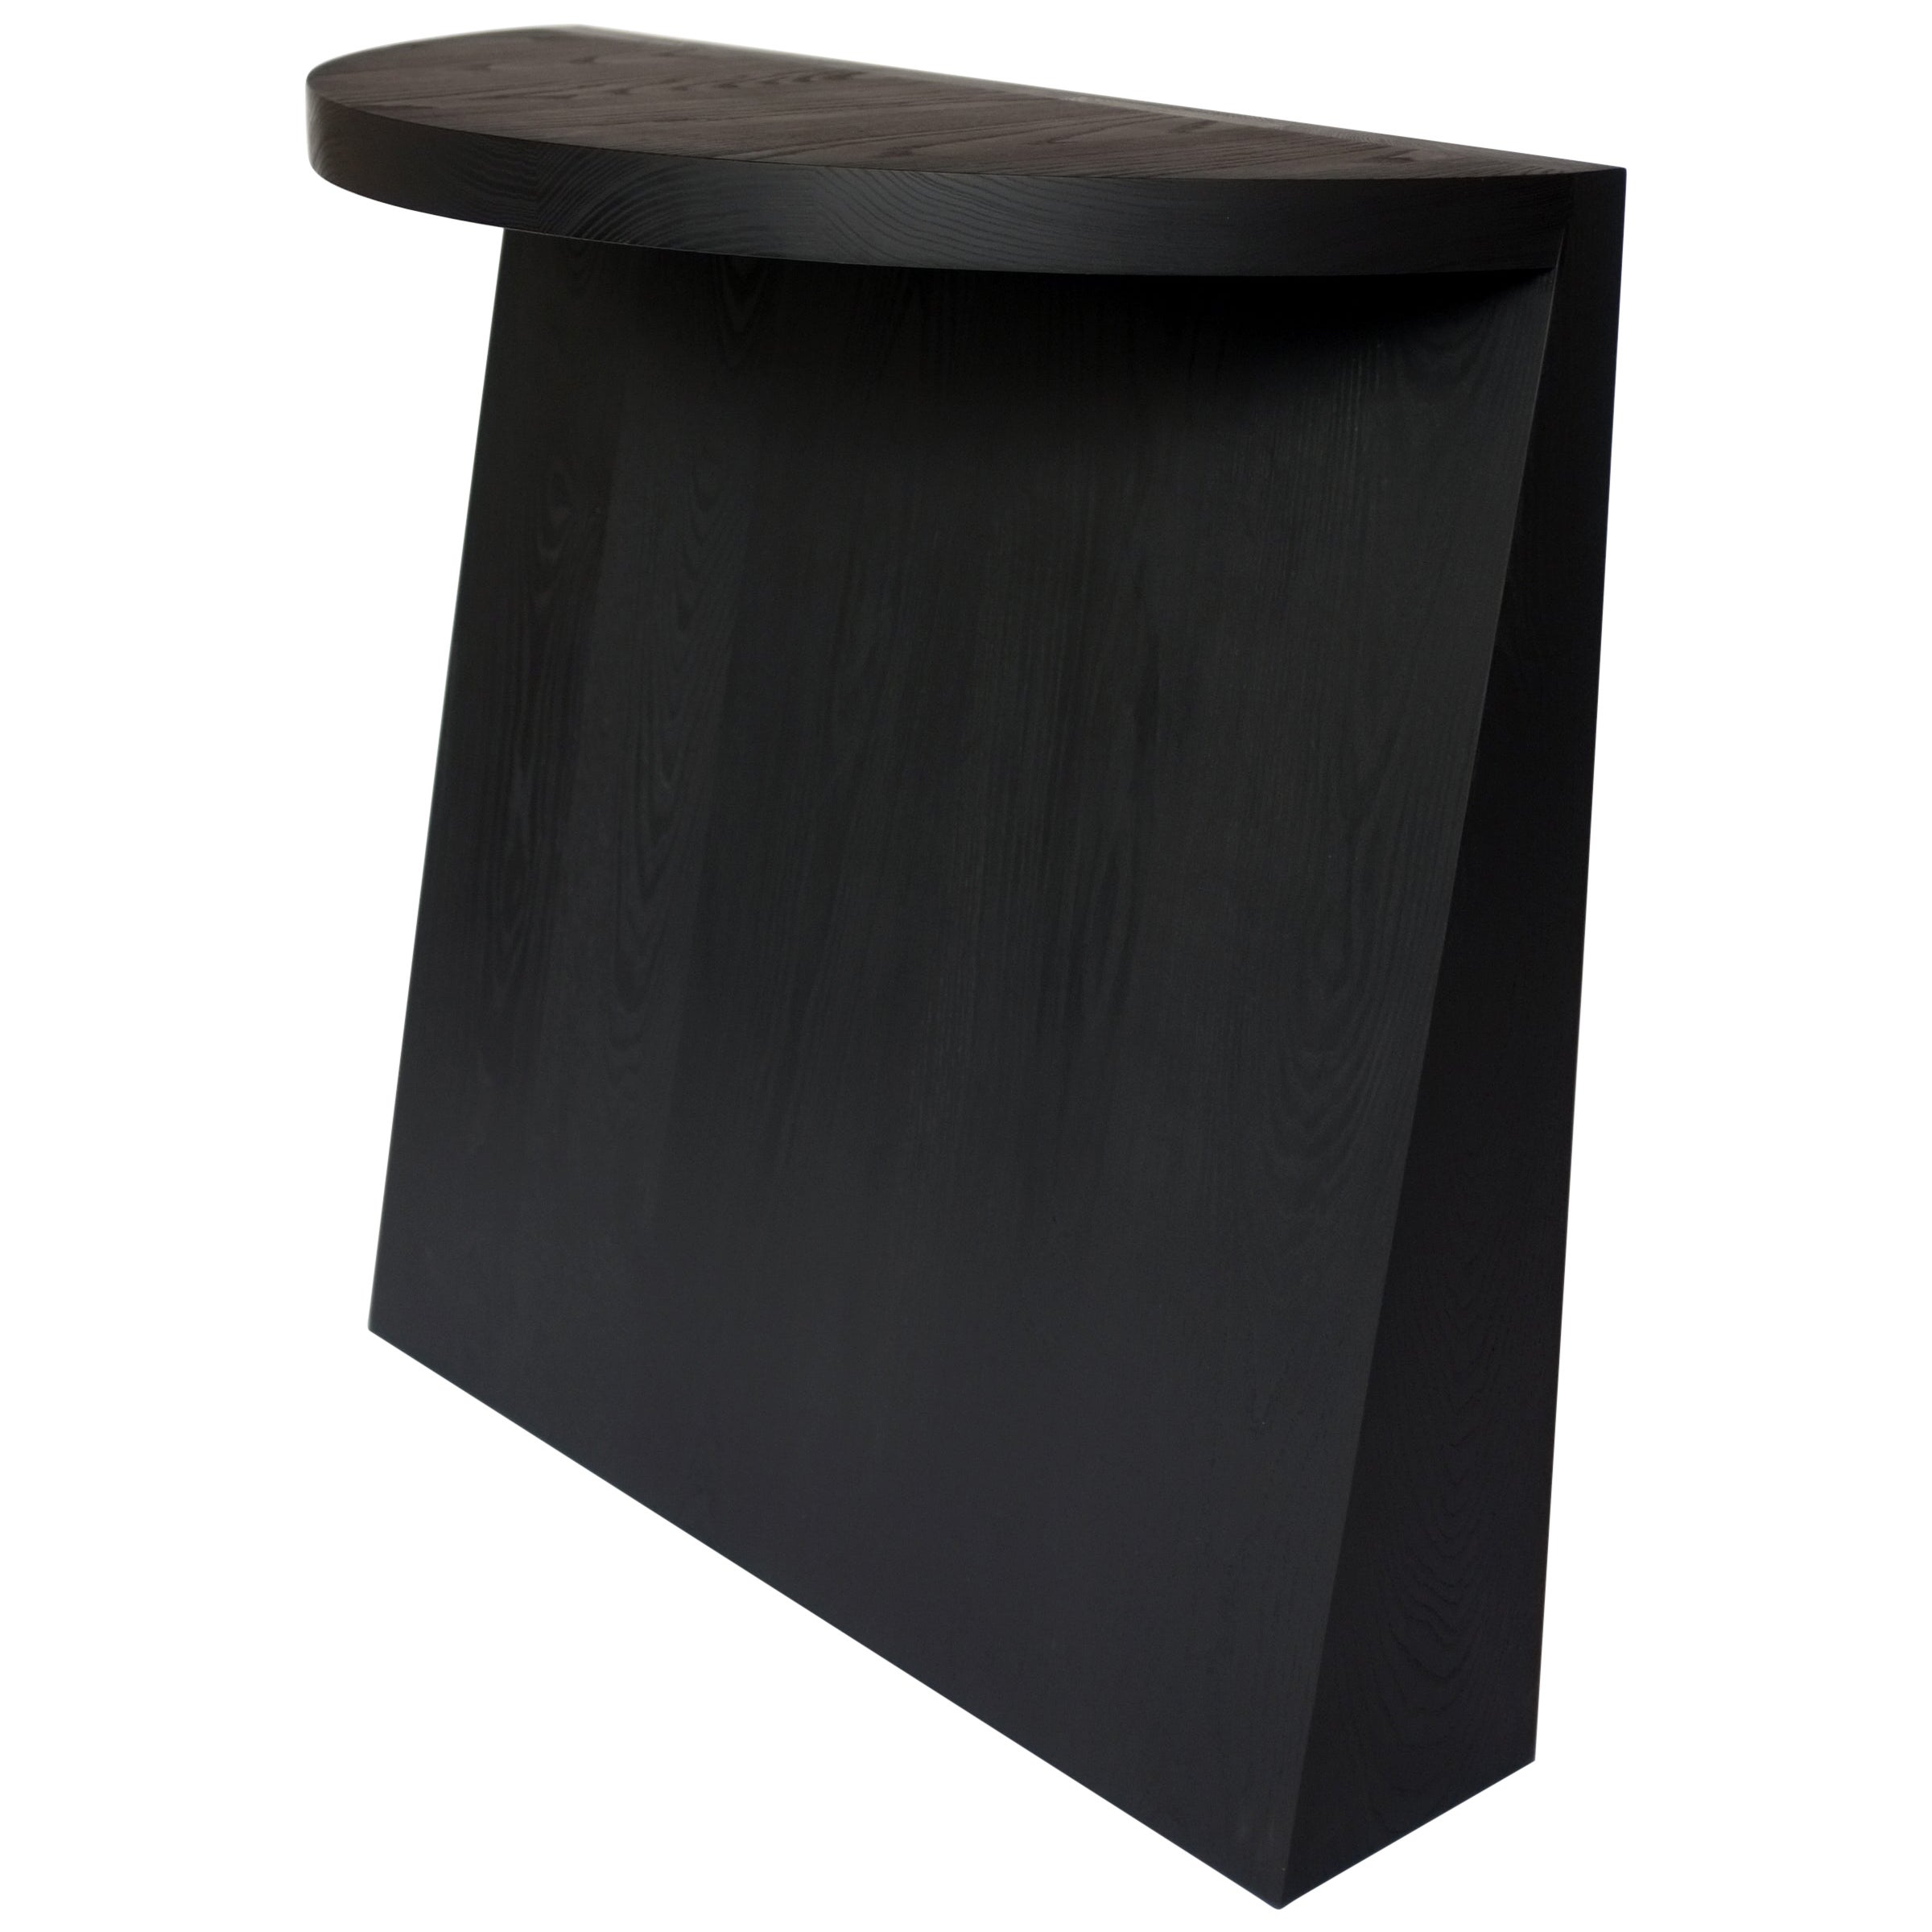 Minimal Sculptural Geometric Black Dyed Ash Wood Console Table by Campagna